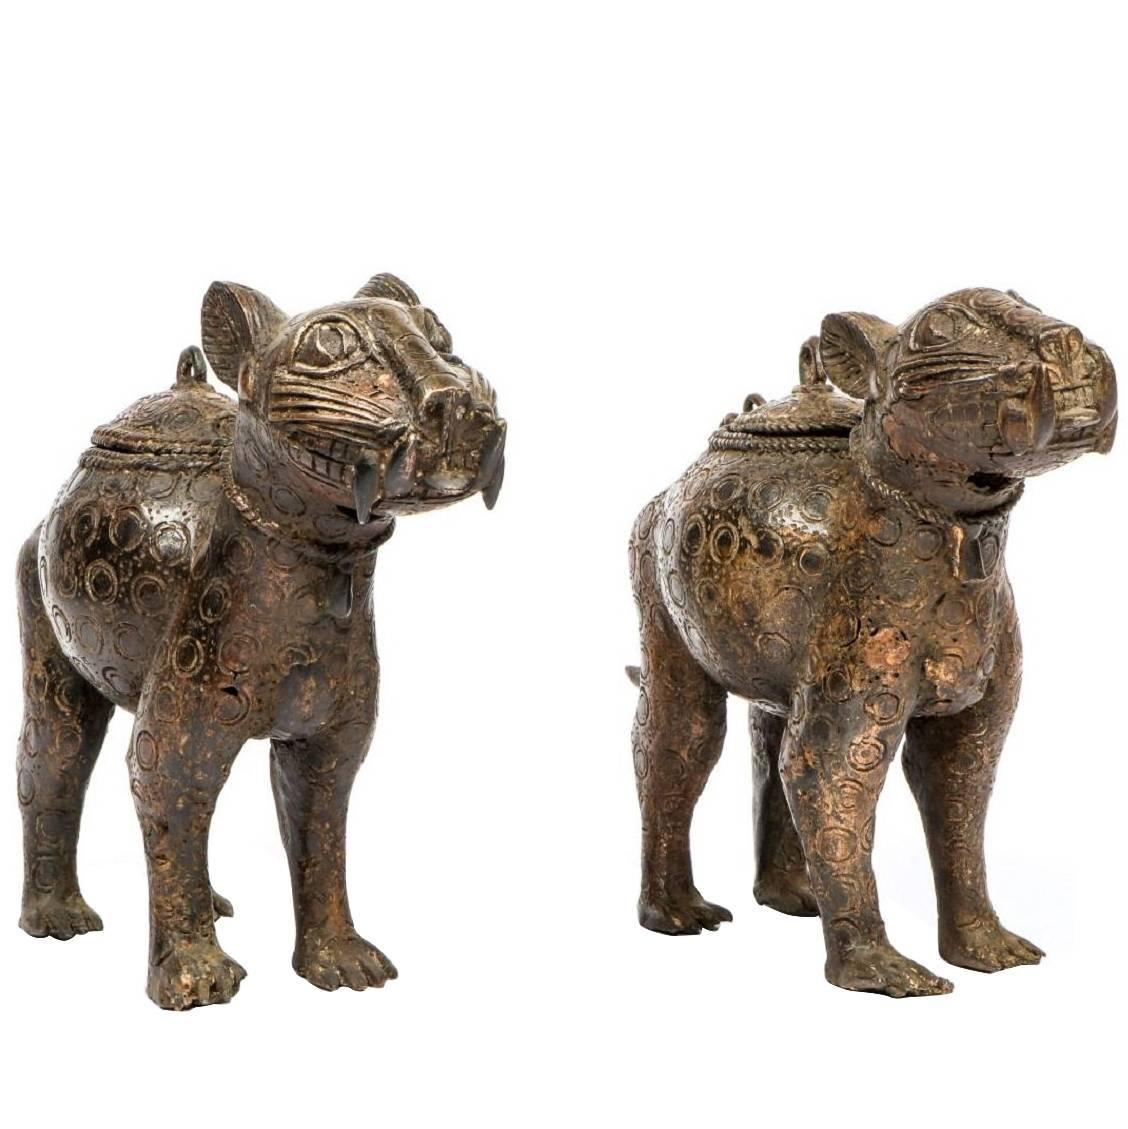 Pair of decorative benin bronze leopard statues from nigeria